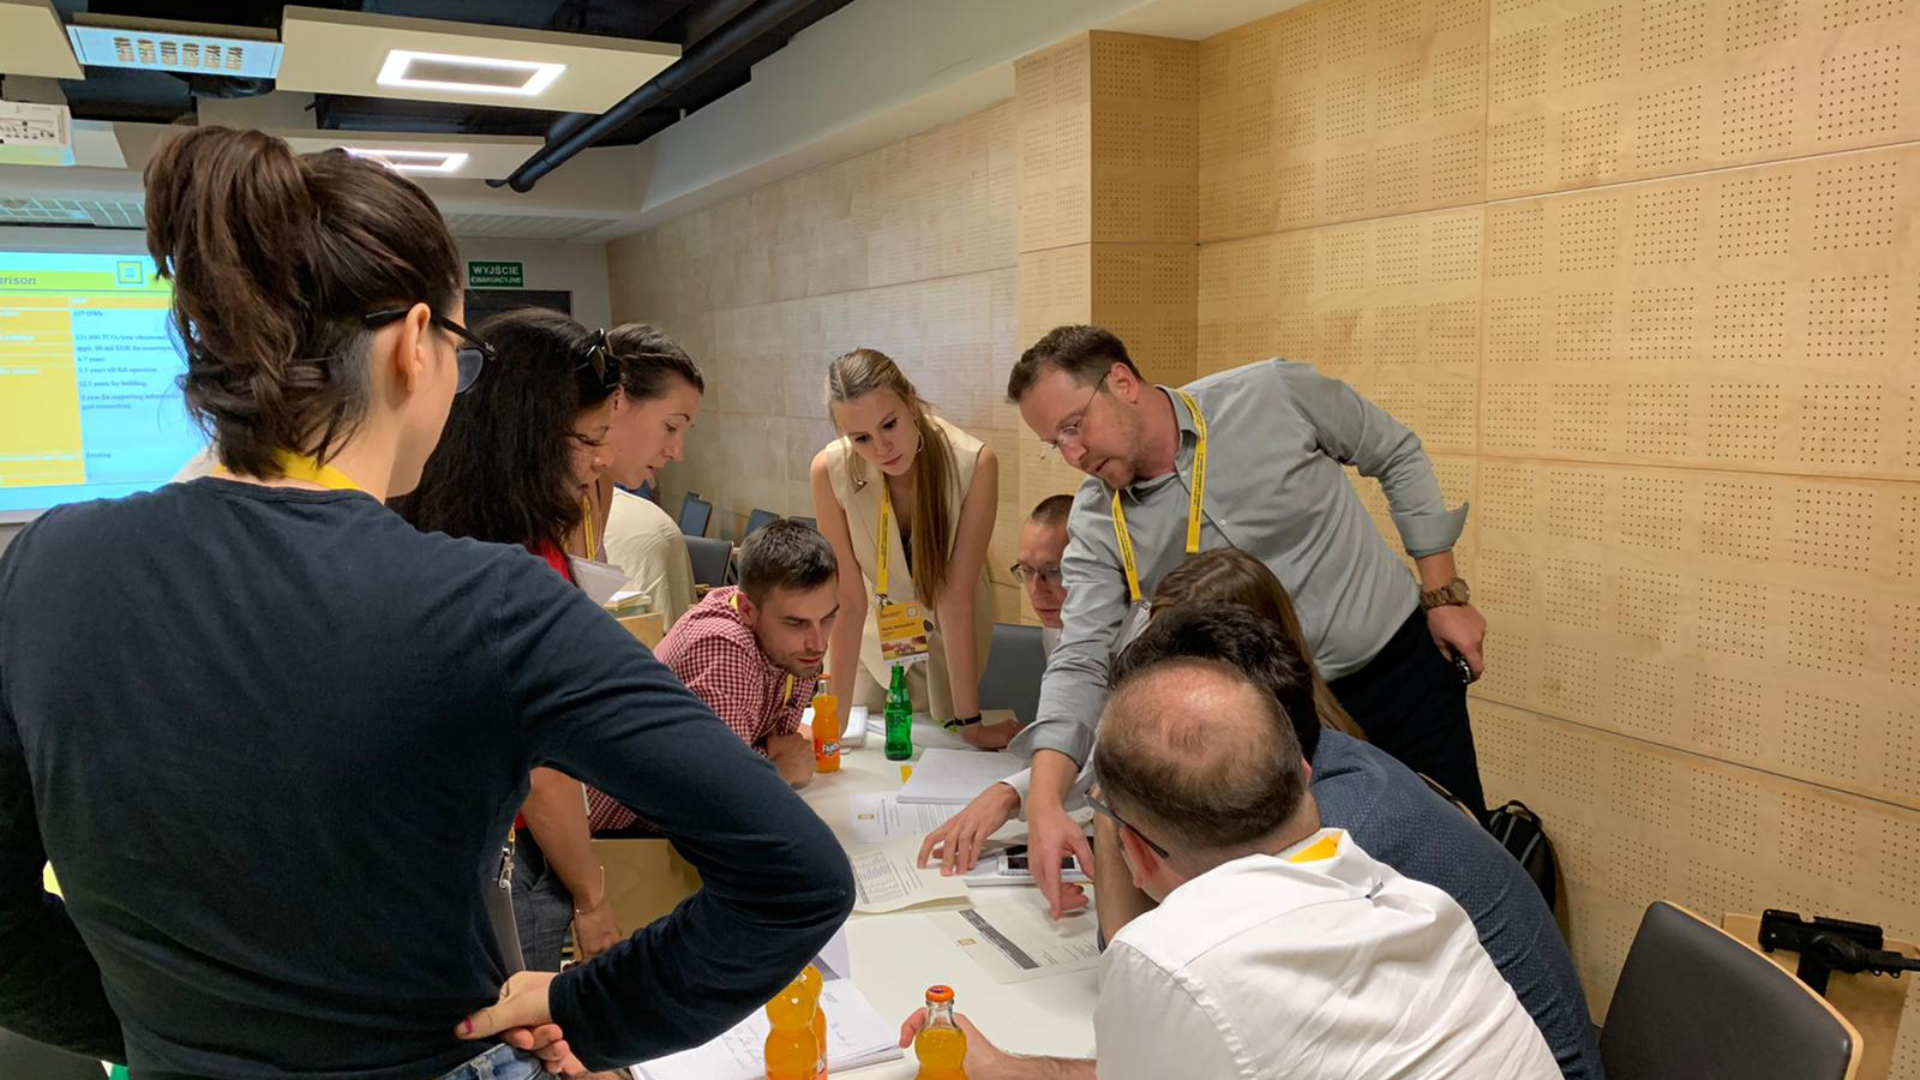 LCA4Climate joins the 4th Energy Community Summer School